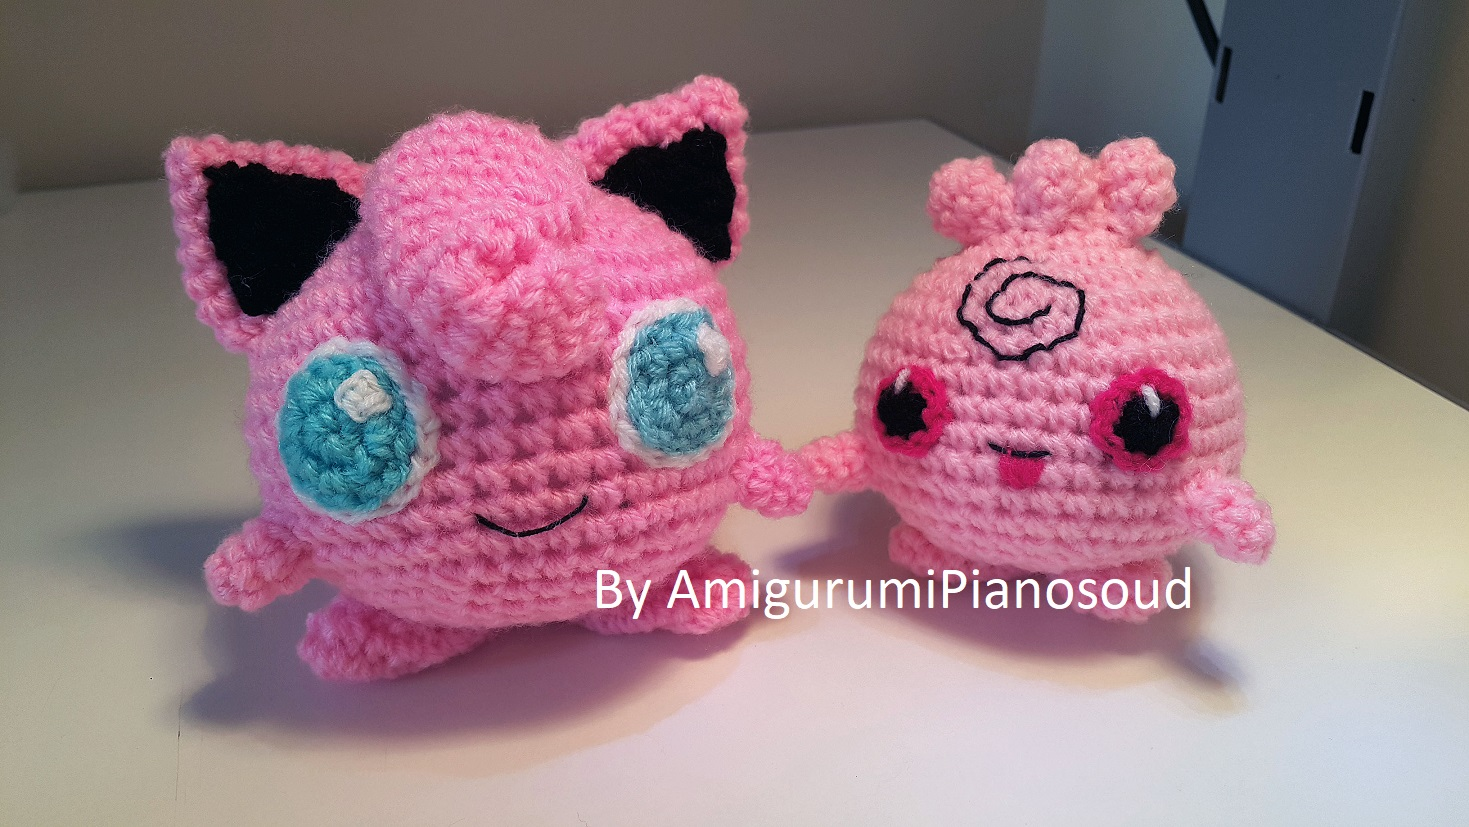 If You Love Jigglypuff, Don't Forget To Check My Free Pattern Of Igglypuff  Too